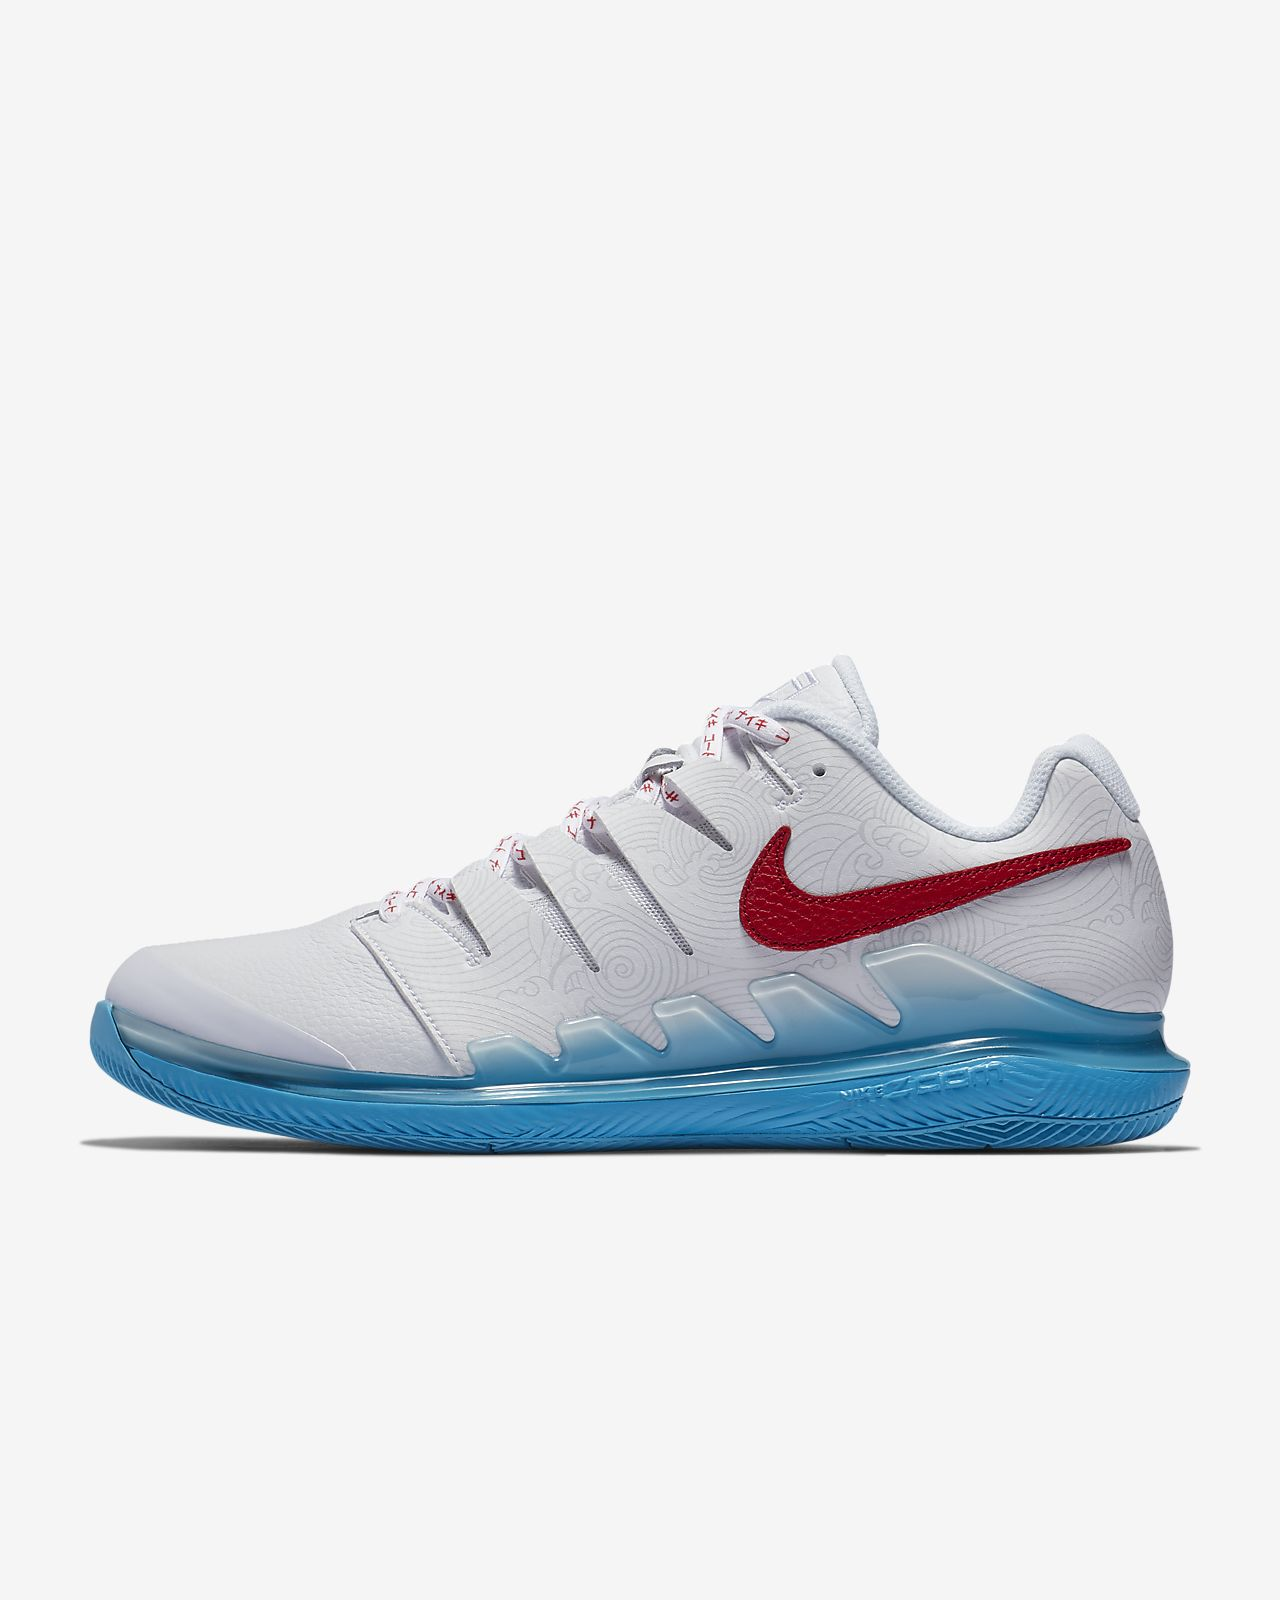 NikeCourt Air Zoom Vapor X Leather 男款硬地球場網球鞋